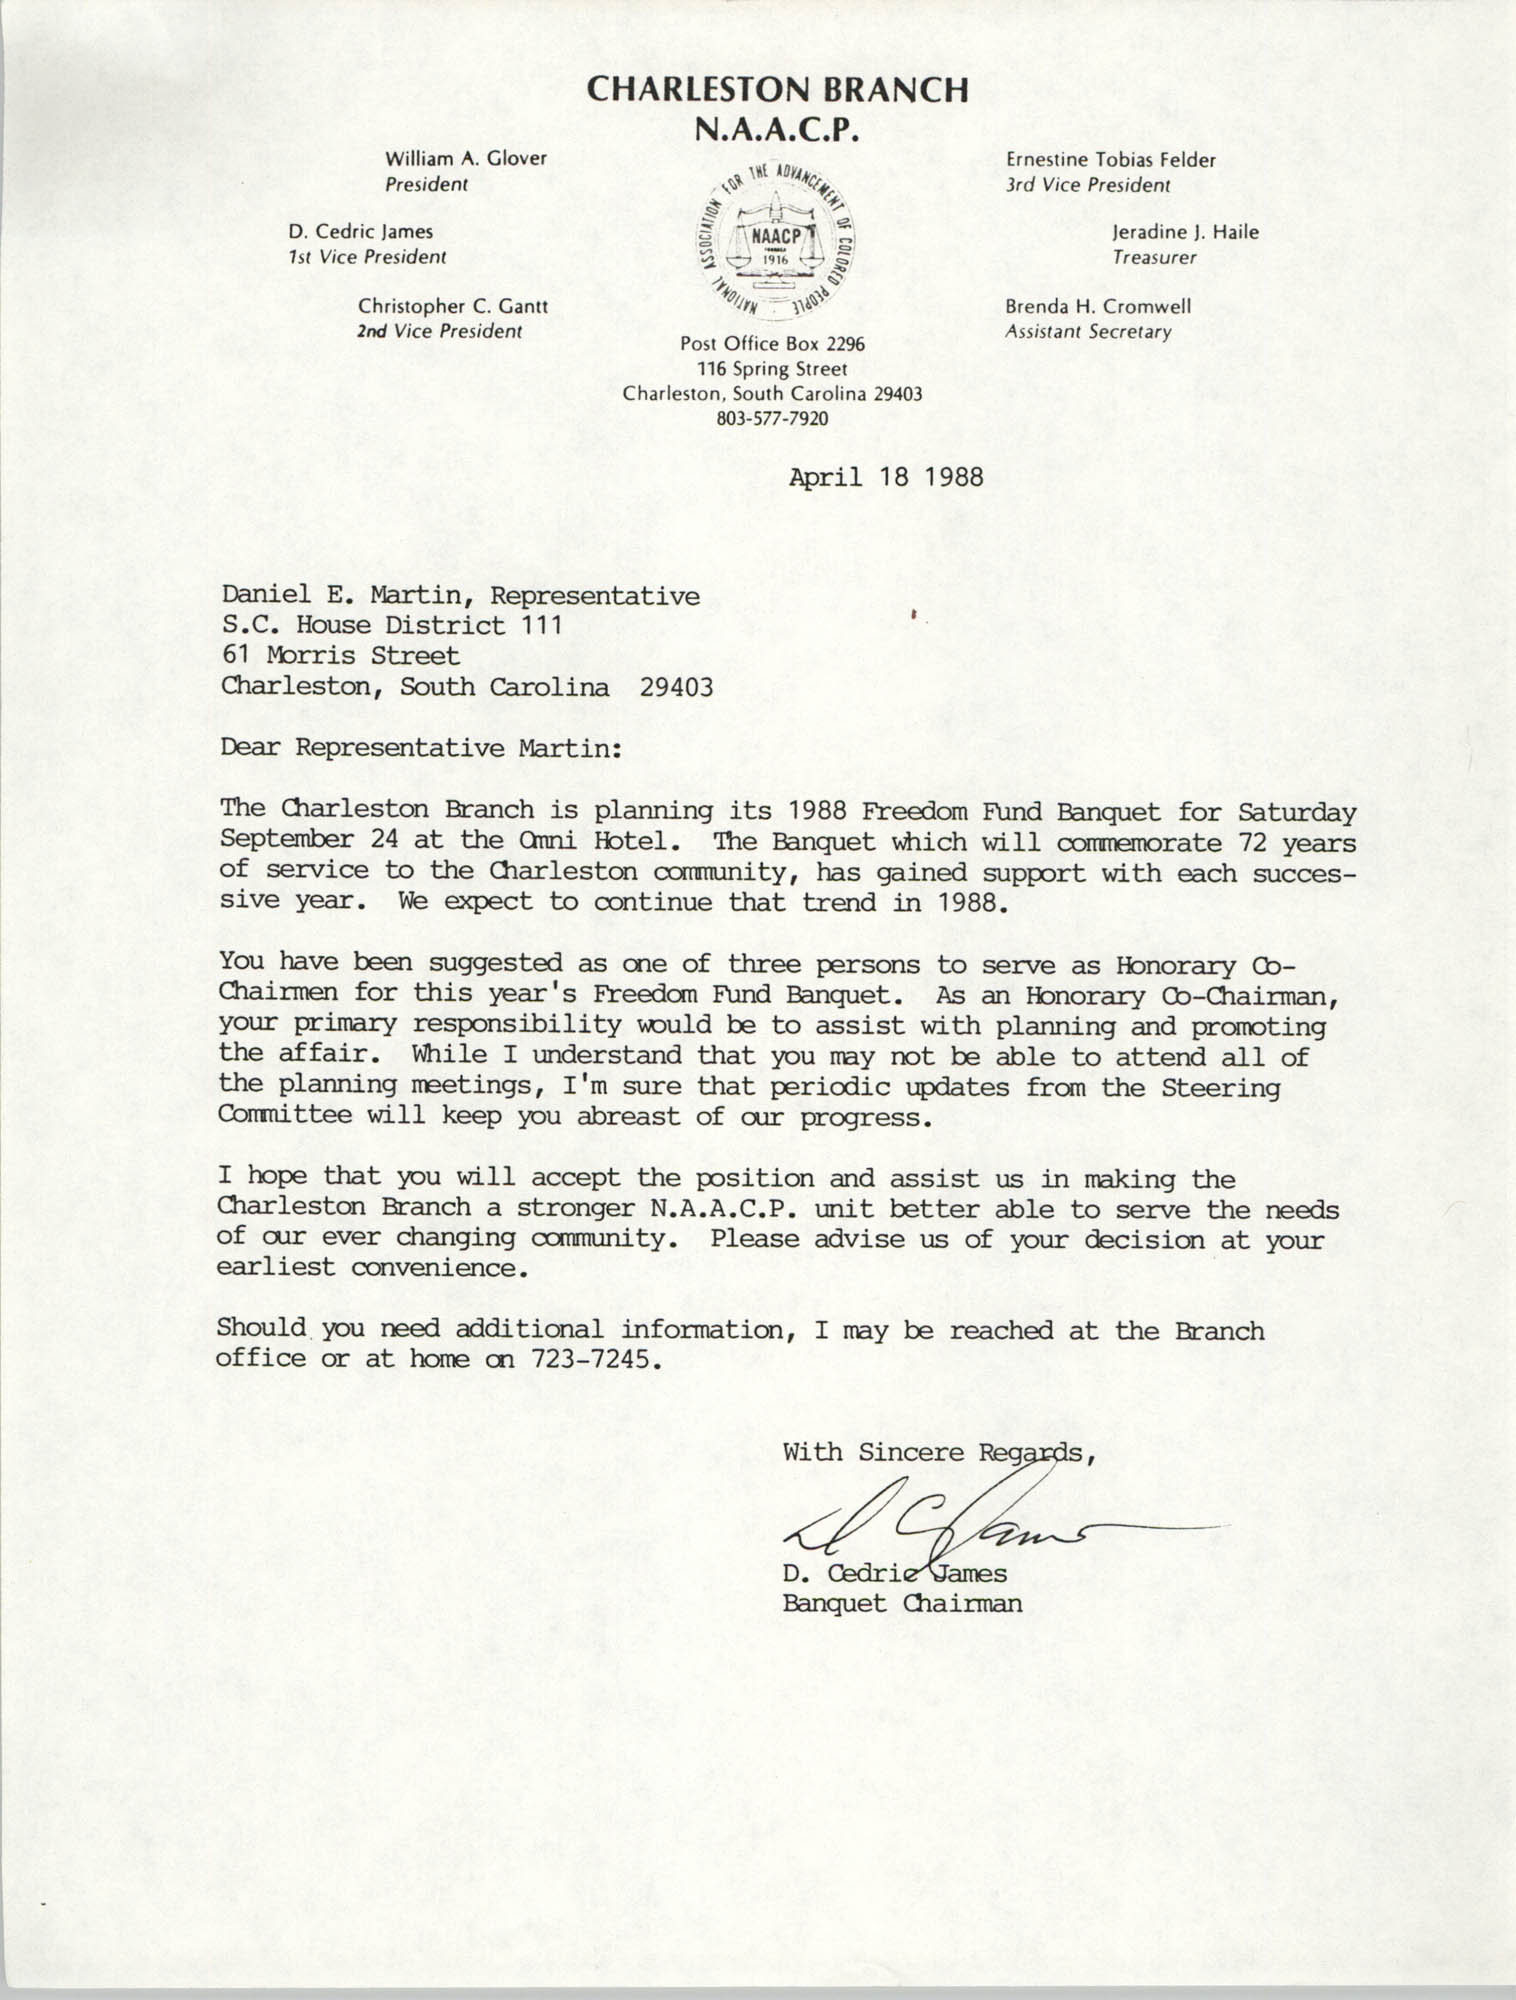 Letter from D. Cedric James to Daniel E. Martin, April 18, 1988